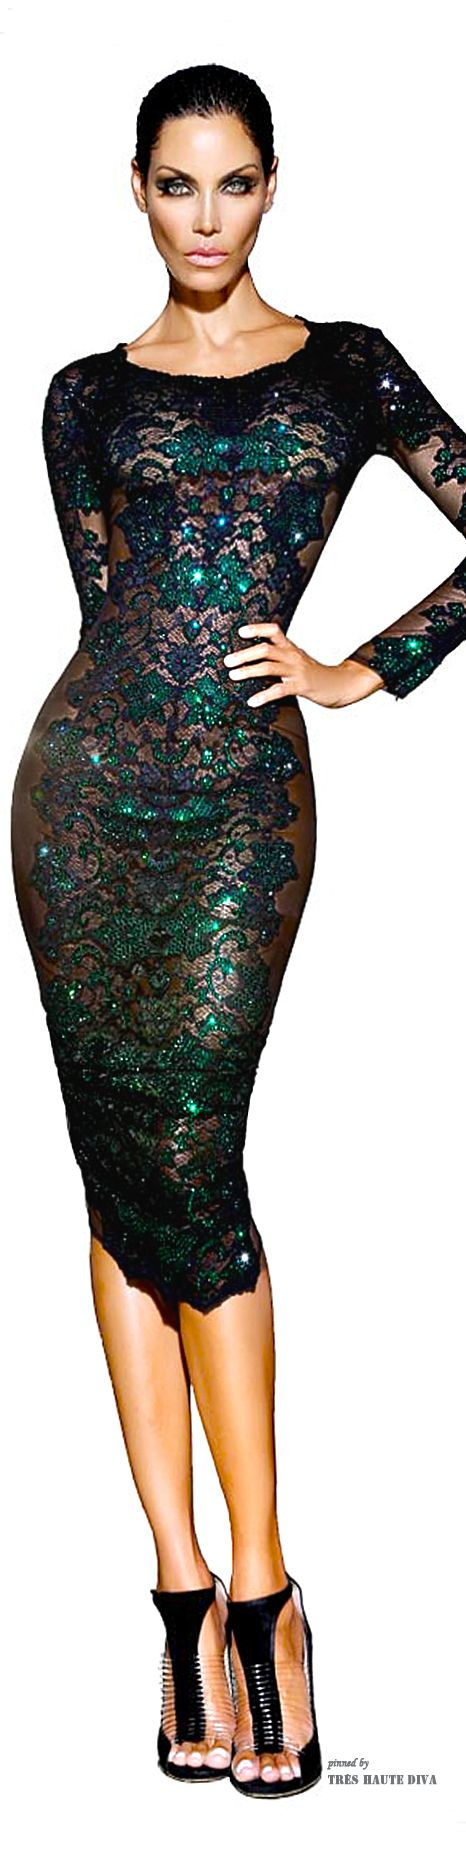 Camille Flawless Black And Emerald Swarovski Crystal Dress Promdress